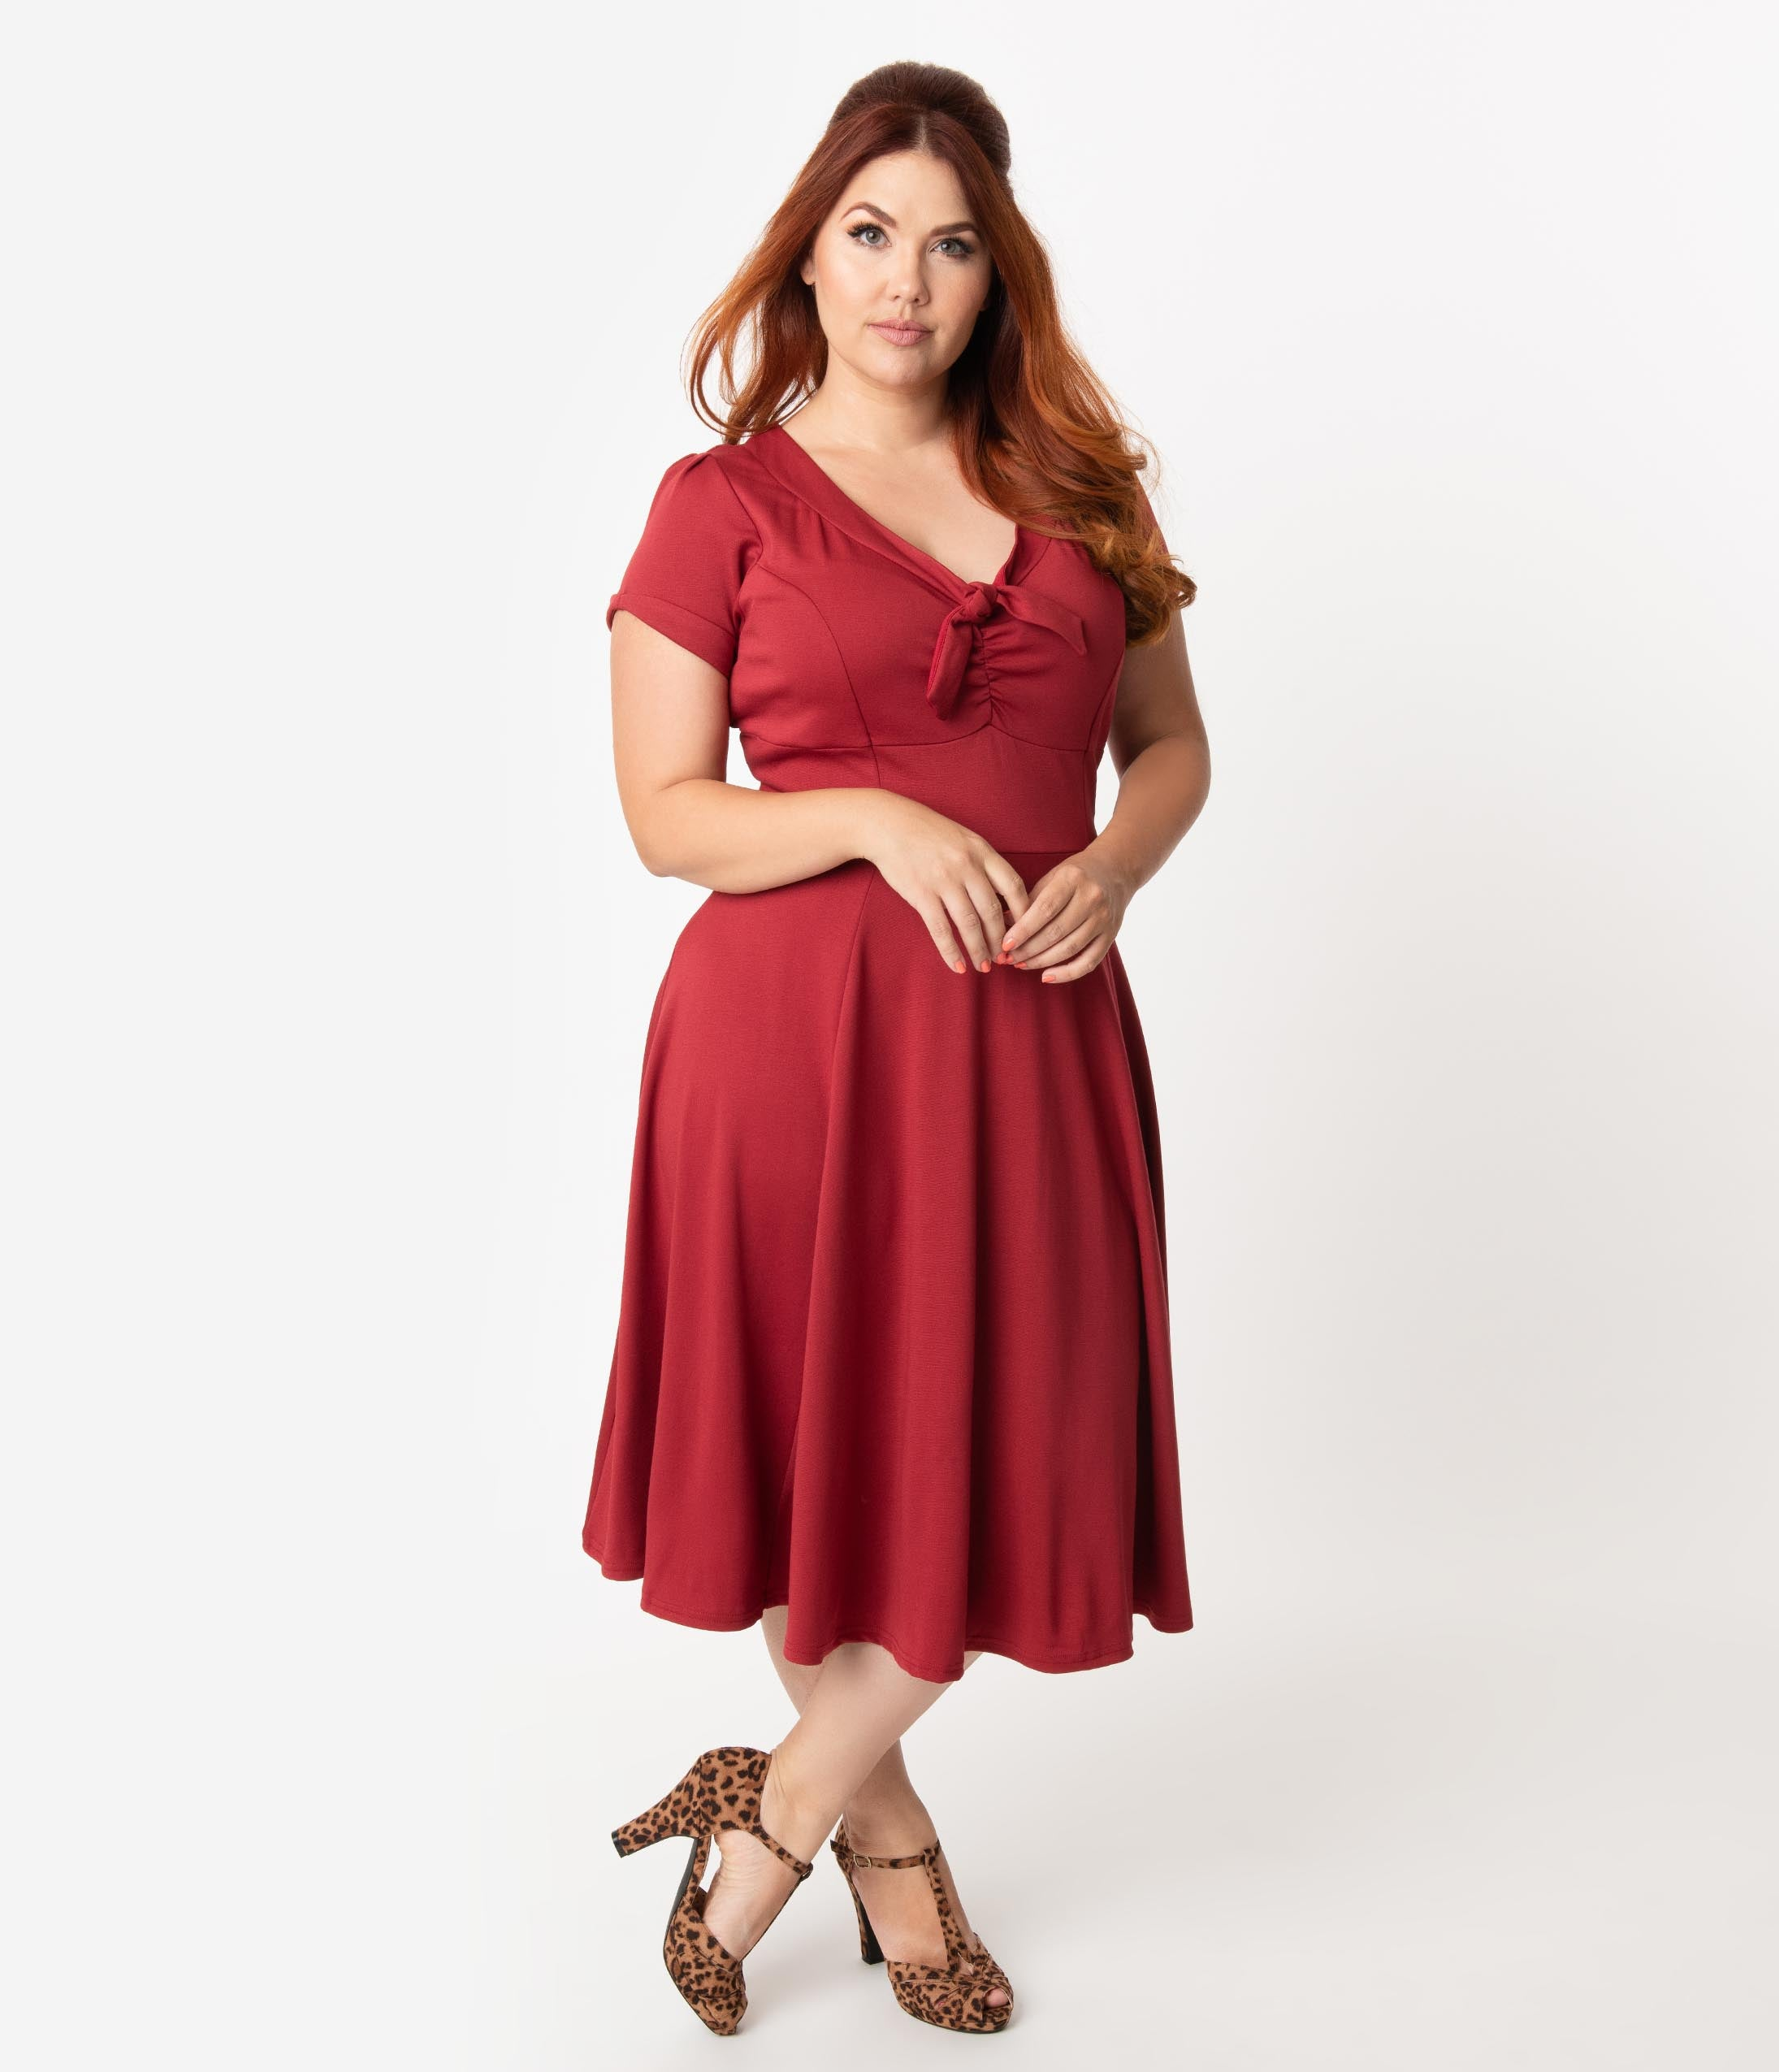 1940s Fashion Advice for Tall Women Unique Vintage Plus Size 1940S Style Burgundy Knit Short Sleeve Natalie Swing Dress $88.00 AT vintagedancer.com